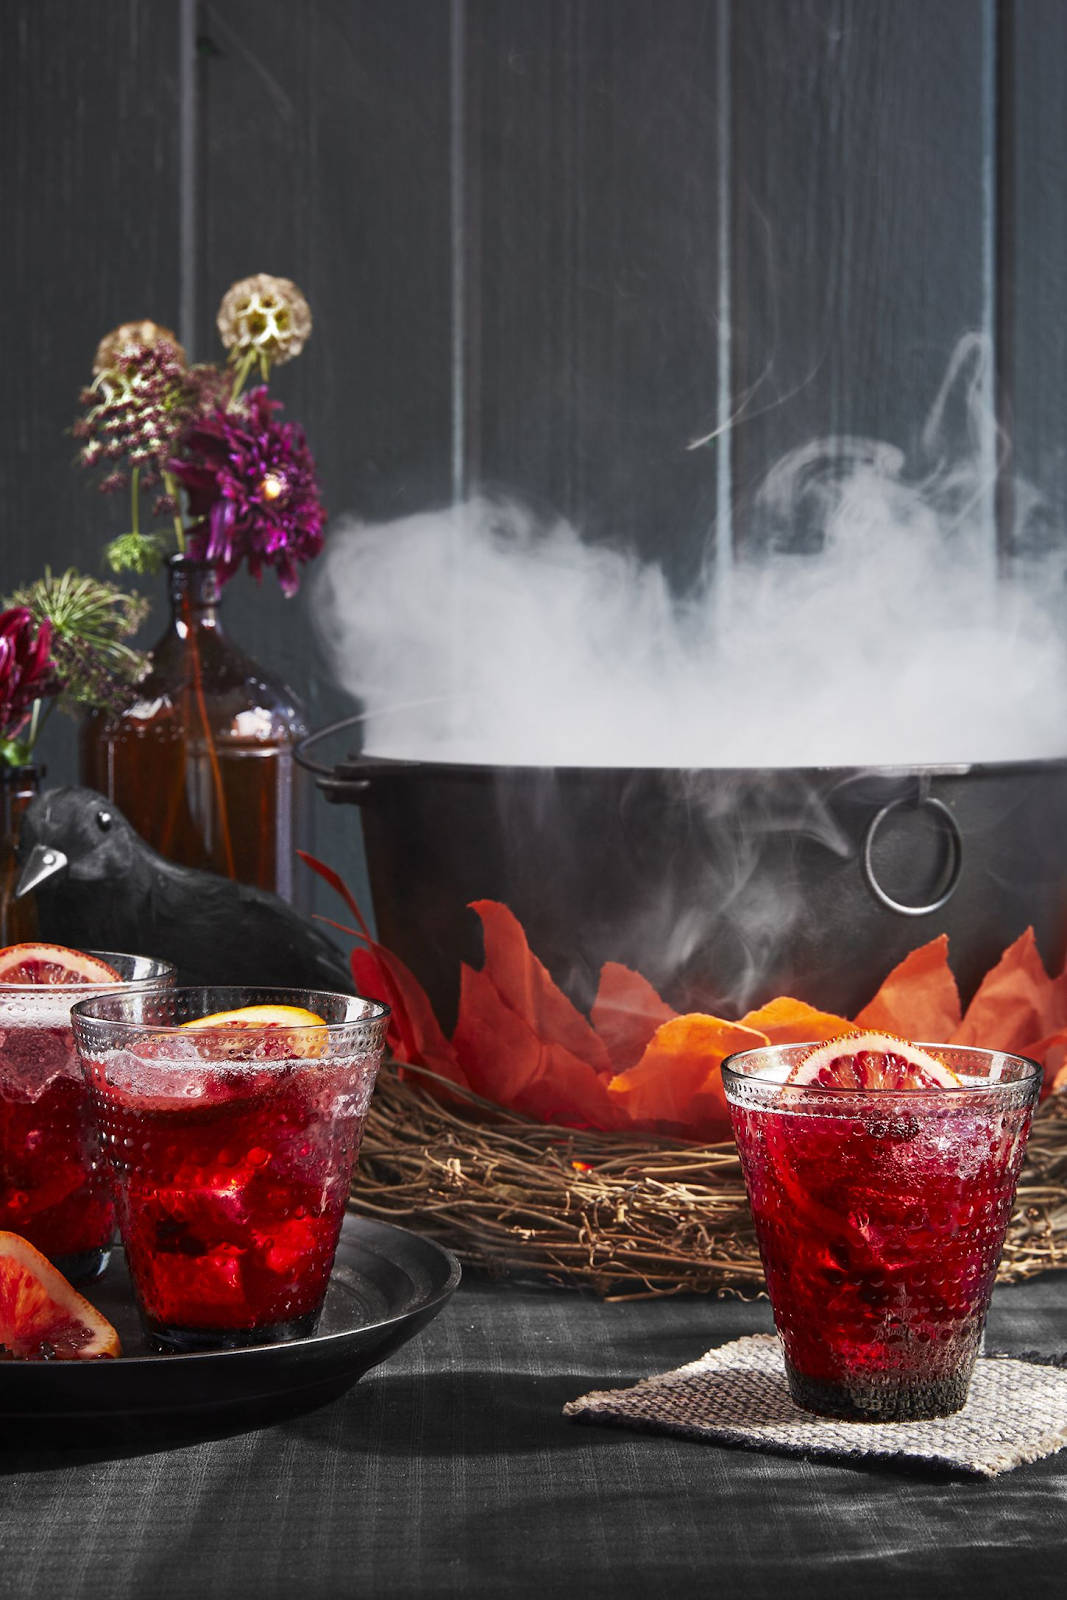 Bubbling Witches Cauldron: These 30 DIY Halloween Decorations That Are Wickedly Creative will save you money and allow your creativity to flourish